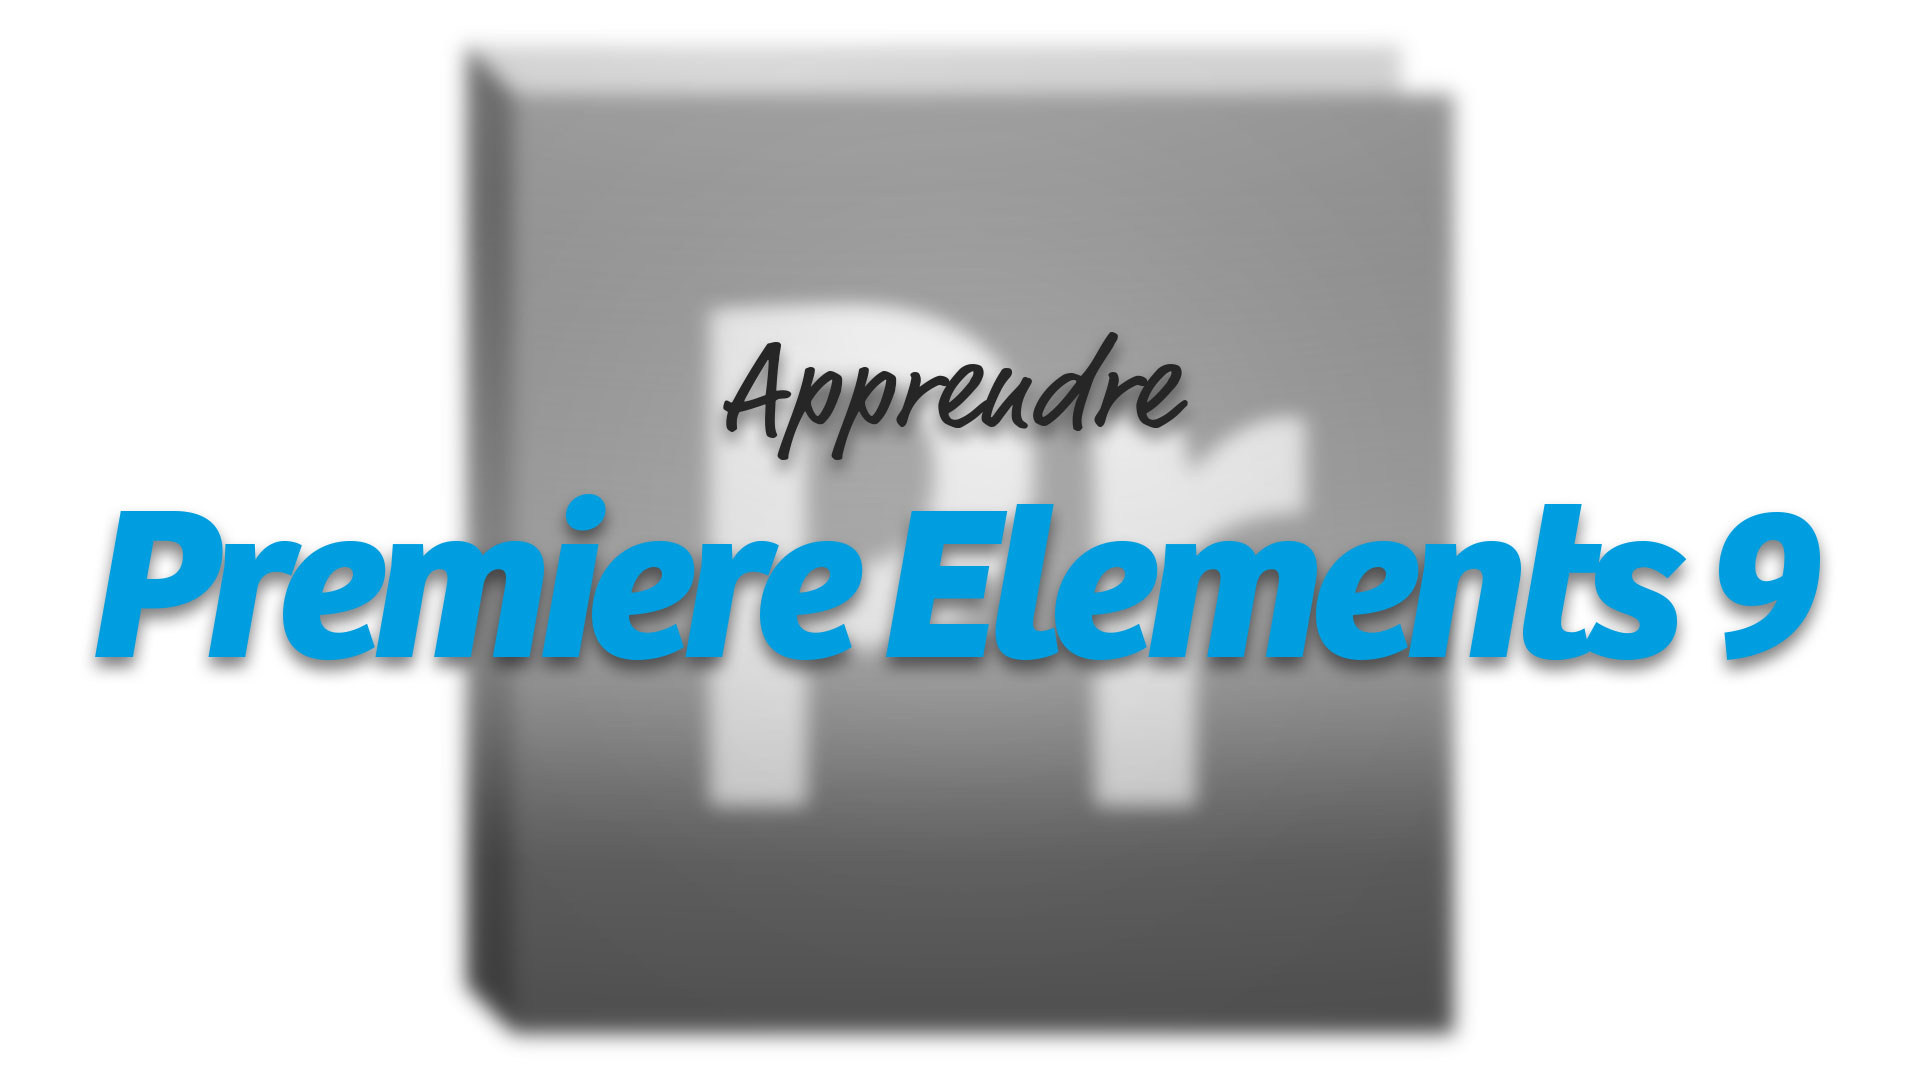 Apprendre Adobe Premiere Elements 9